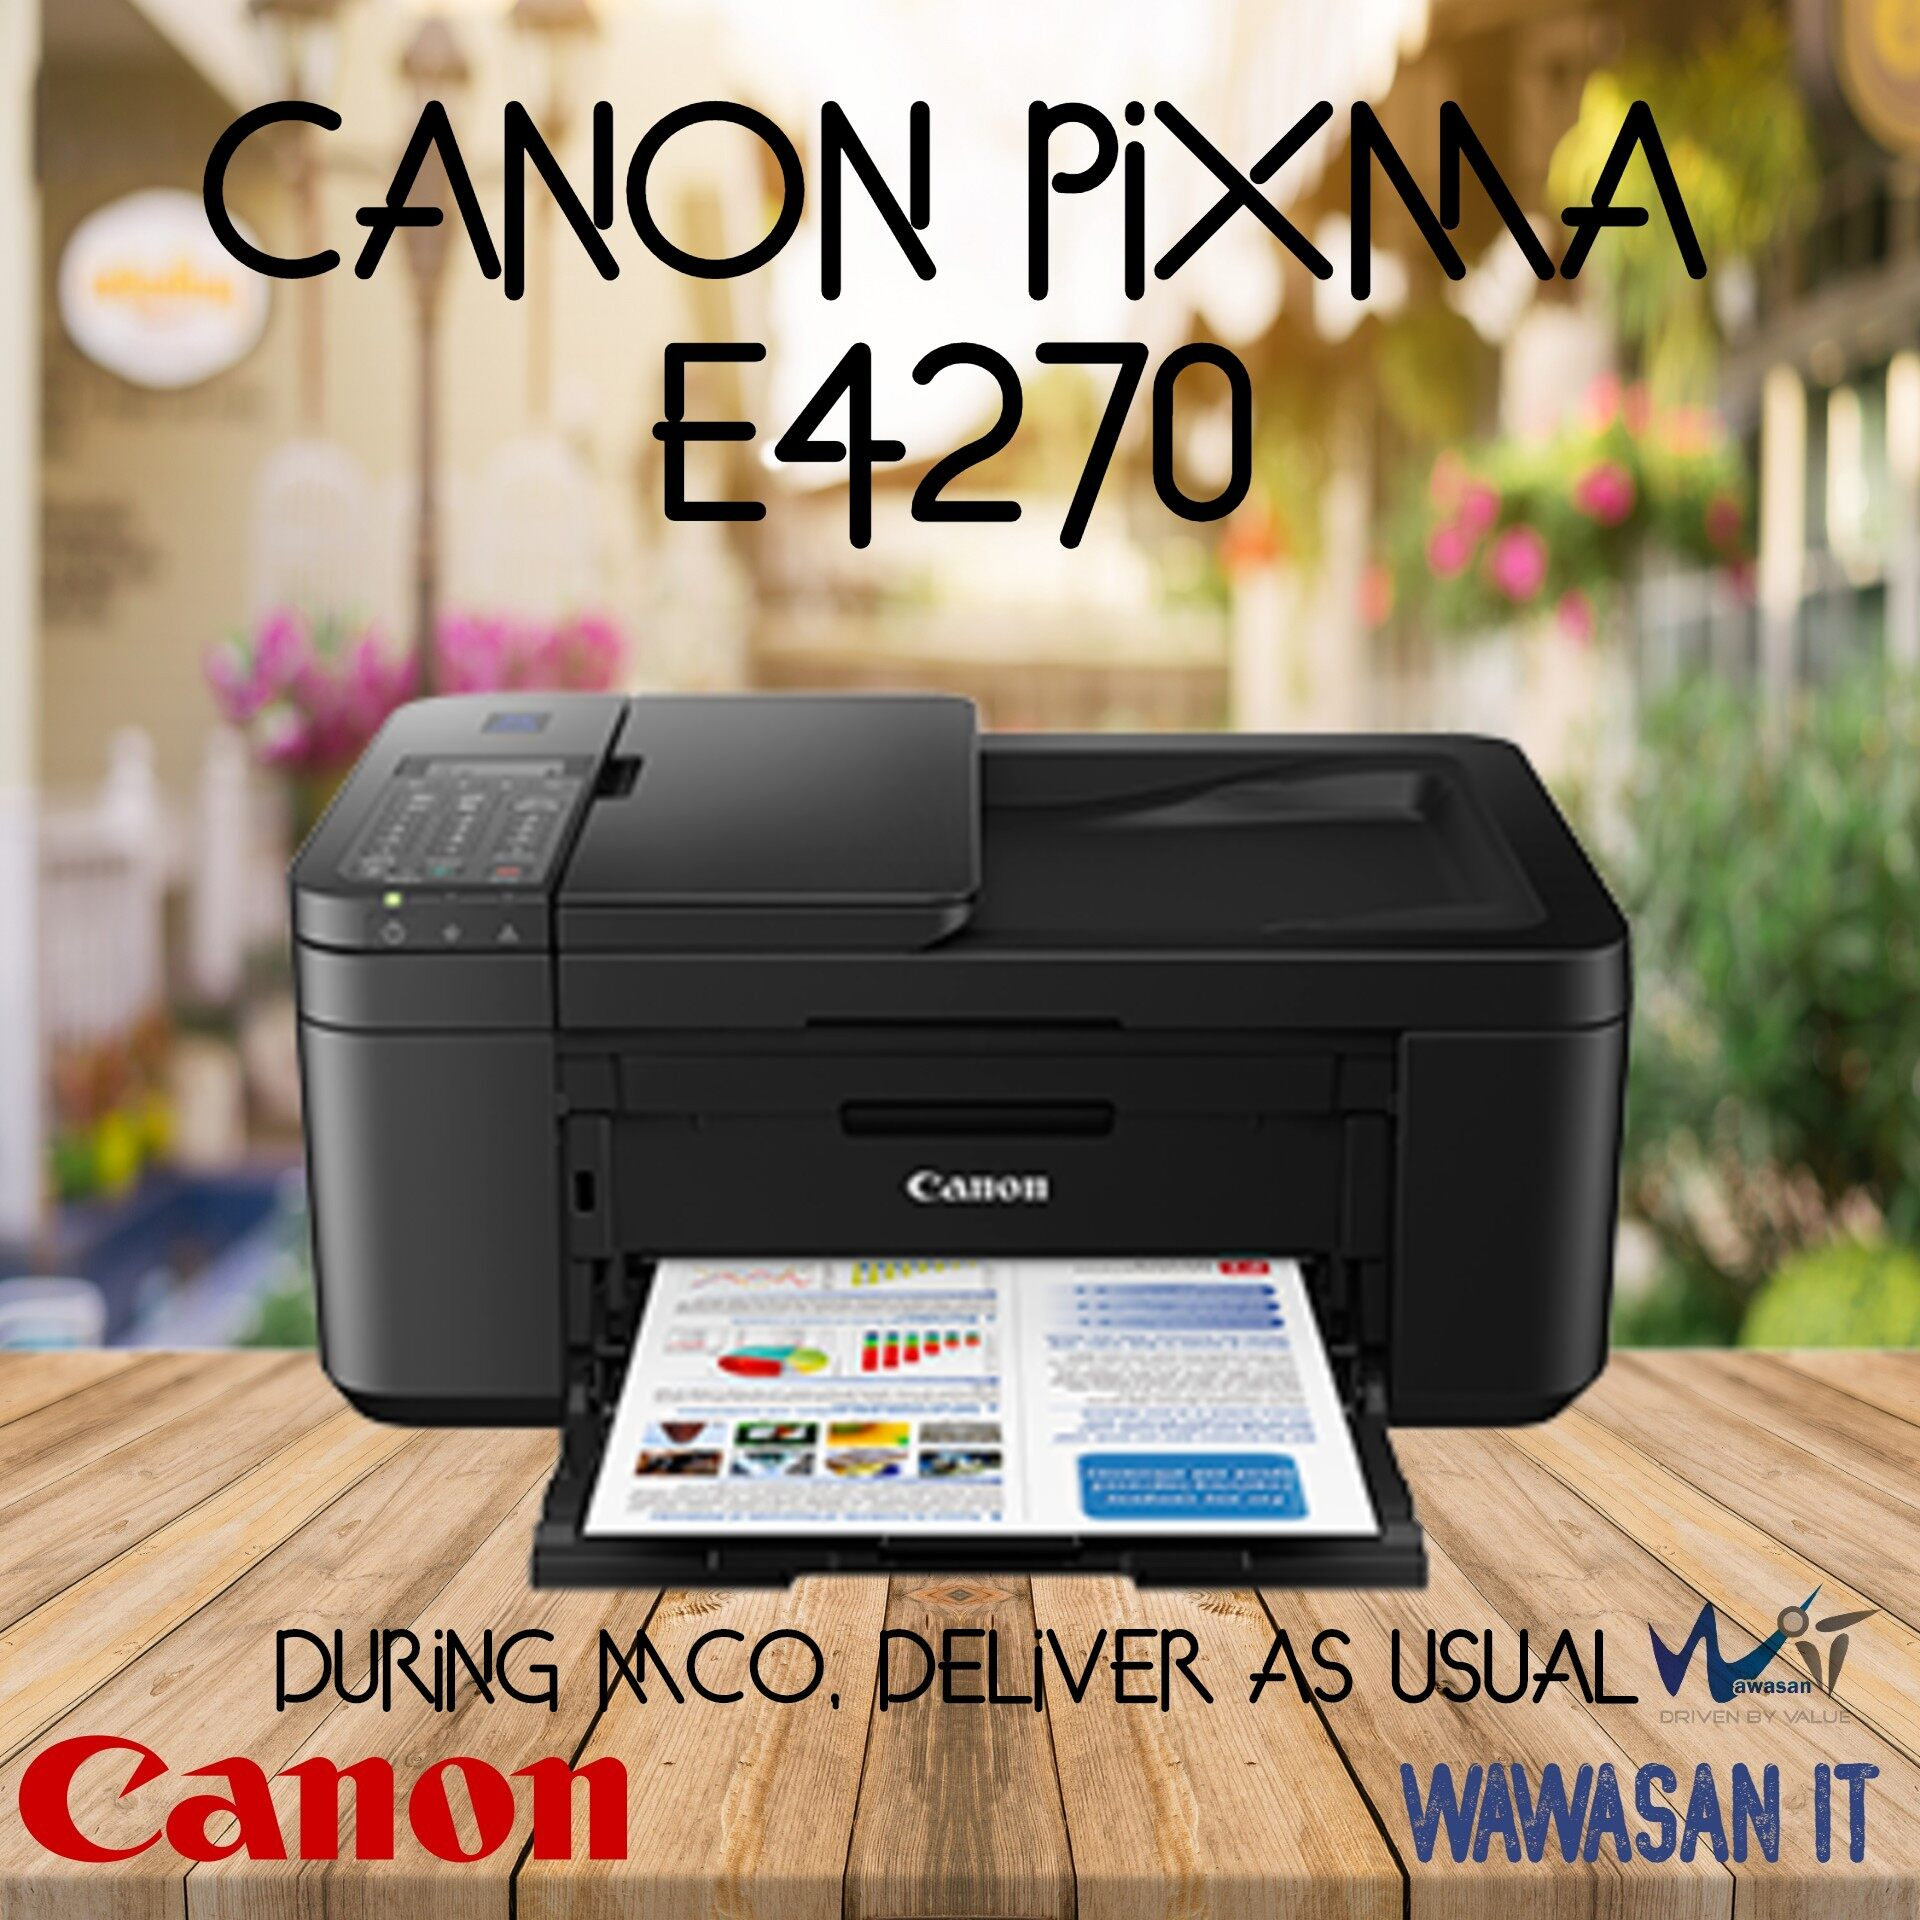 Canon Pixma E4270 All-in-One Print Scan Copy Wifi ,Duplex, Document Feeder with Fax,  similar model Canon E410, Canon E4270, Canon E3370,HP 2135, HP 2676, Canon MG3070s , Canon MG2577s, Canon G2010, Canon G3010